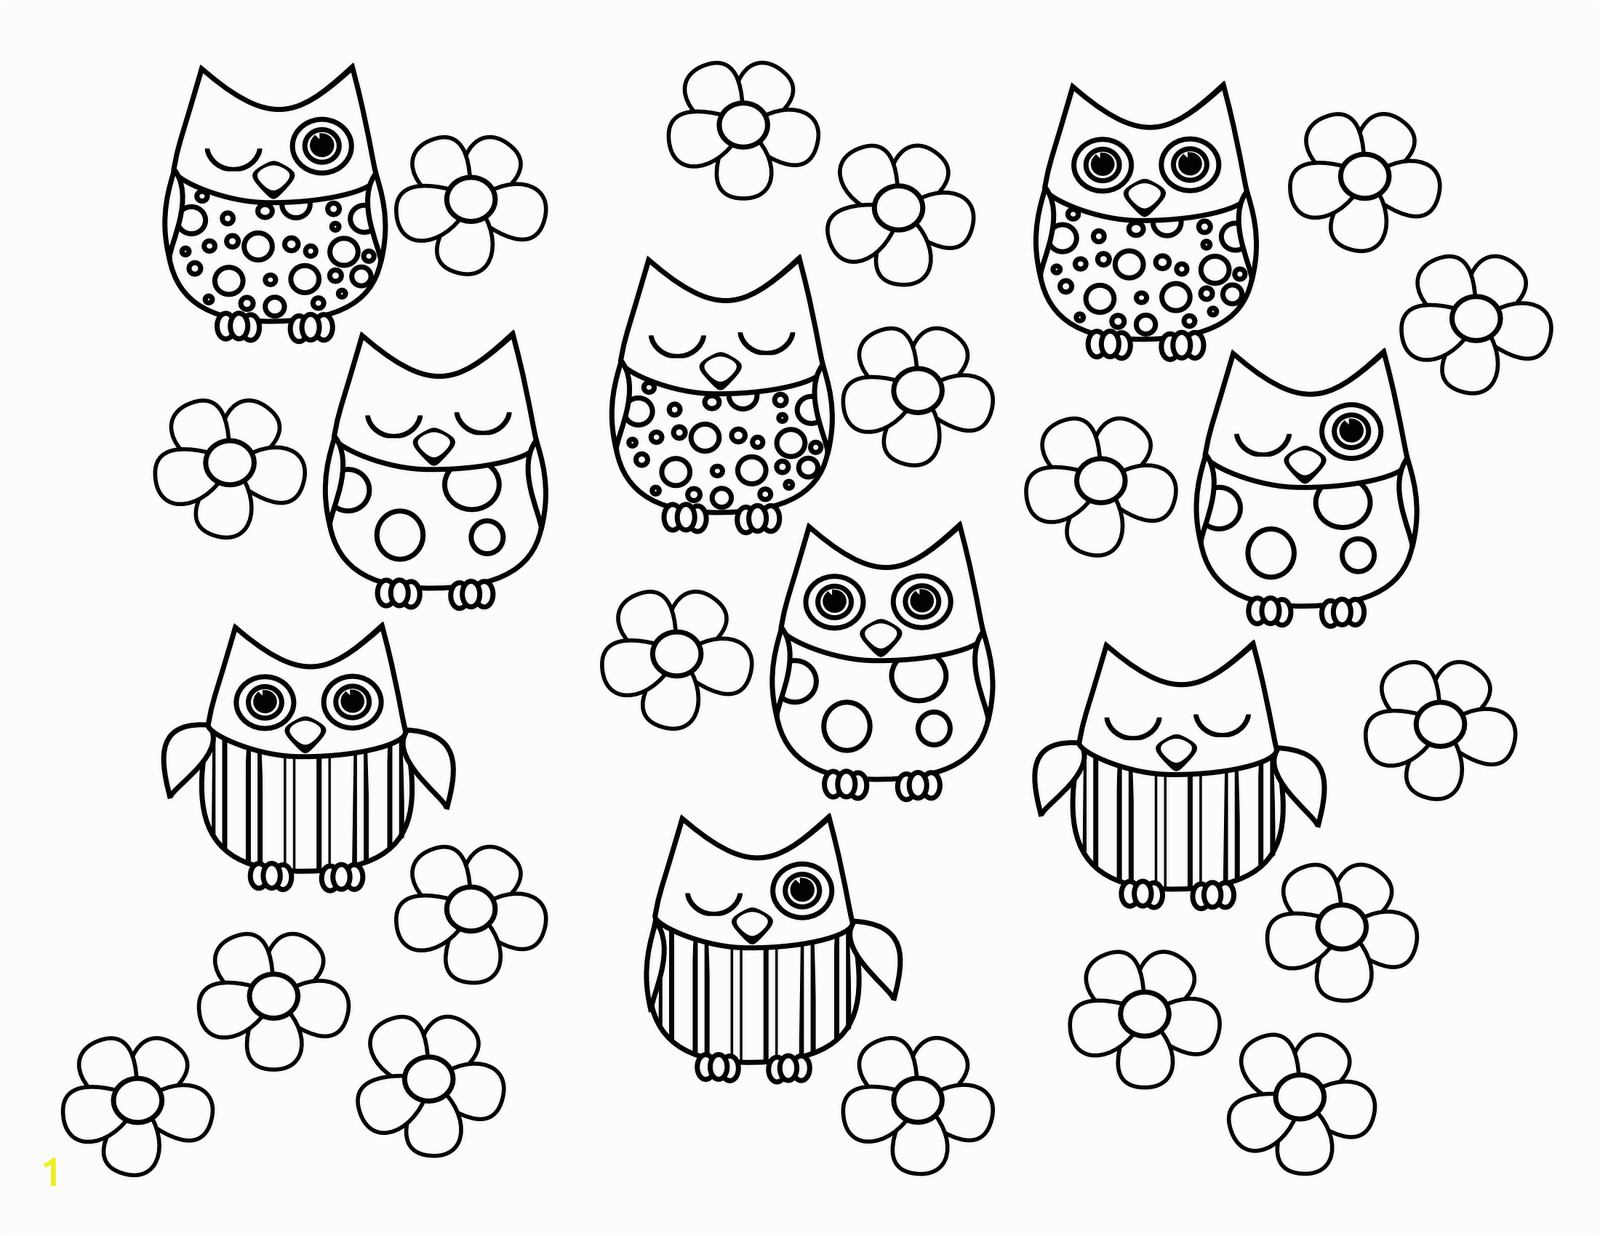 f2af db2128ee51b90ea82b94aa lovely cute owl coloring pages 35 about remodel coloring print 1600 1236